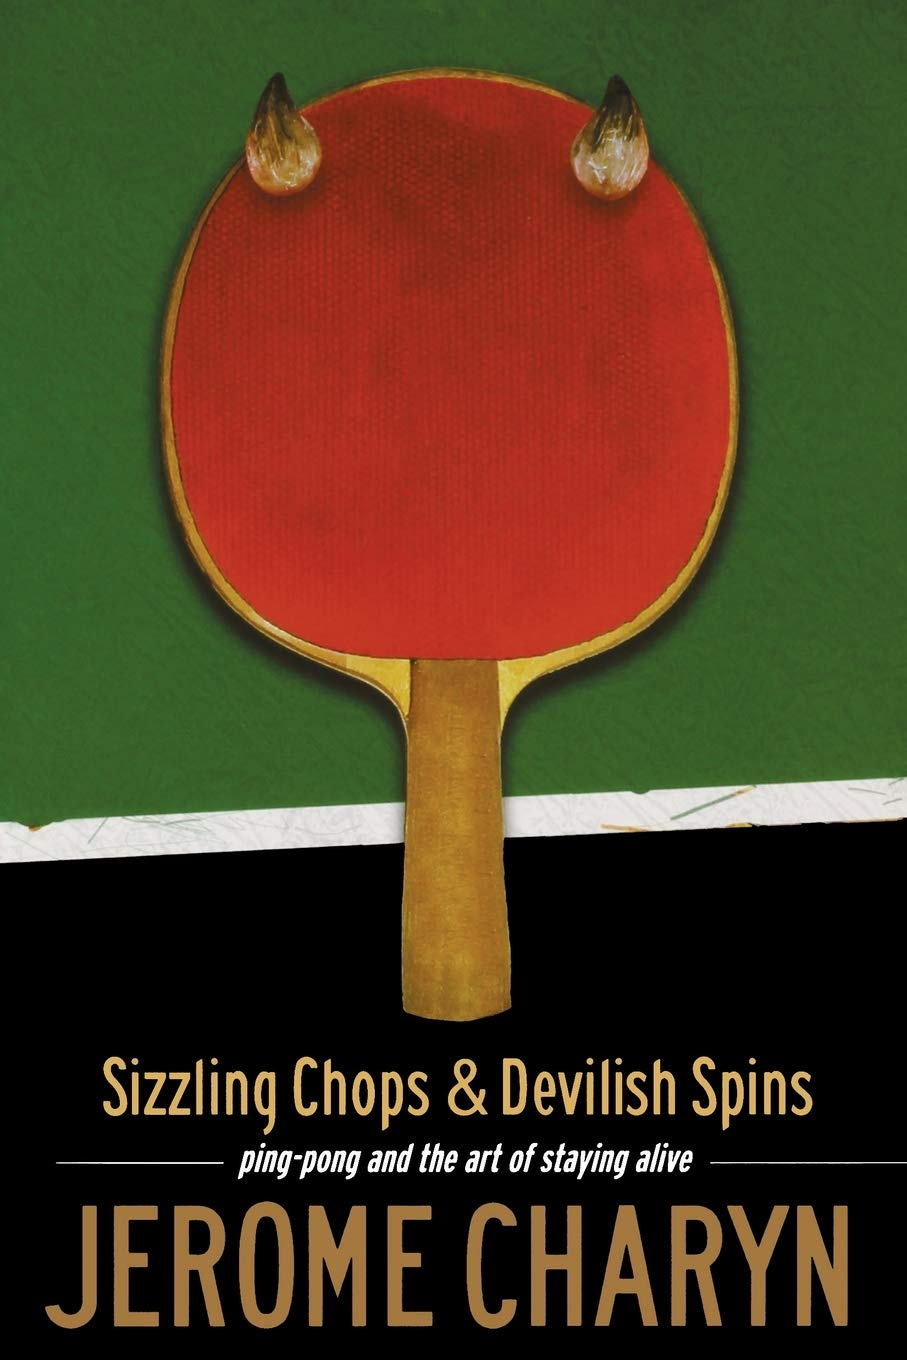 Sizzling Chops And Devilish Spins: Ping-Pong And The Art Of Staying Alive